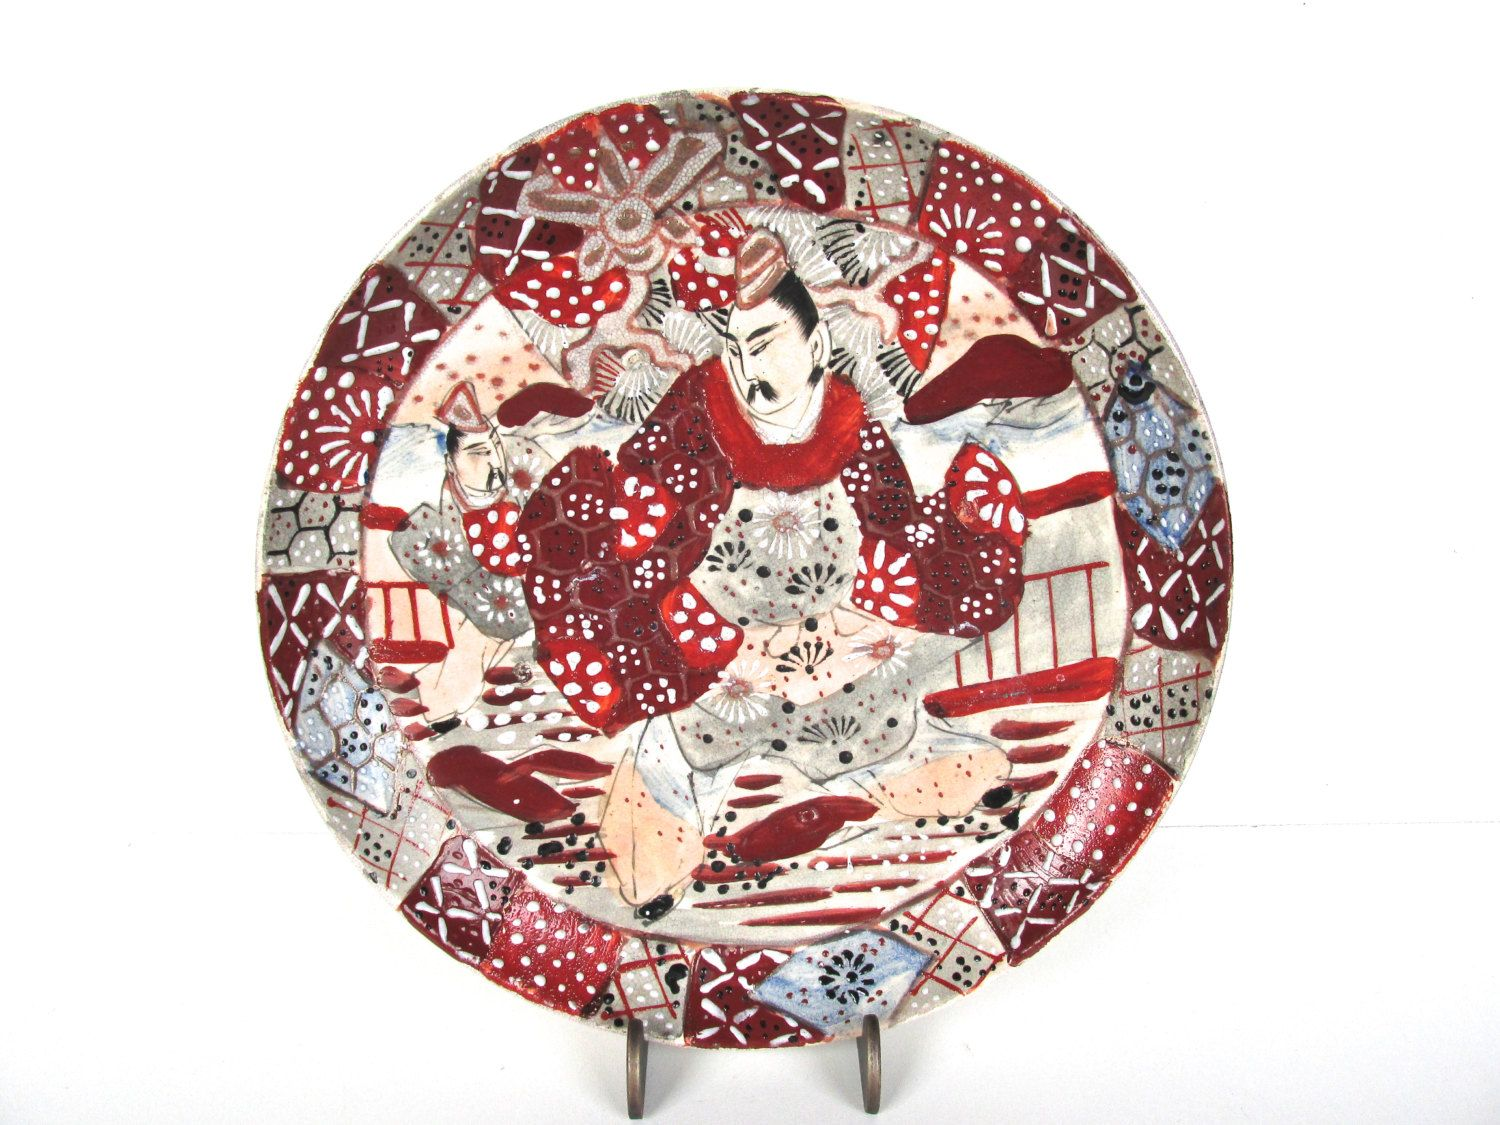 Antique Japanese Hand Painted Decorative Plate Vintage Moriage Display Plate Red And Cream Japanese  sc 1 st  Pinterest & Antique Japanese Hand Painted Decorative Plate Vintage Moriage ...